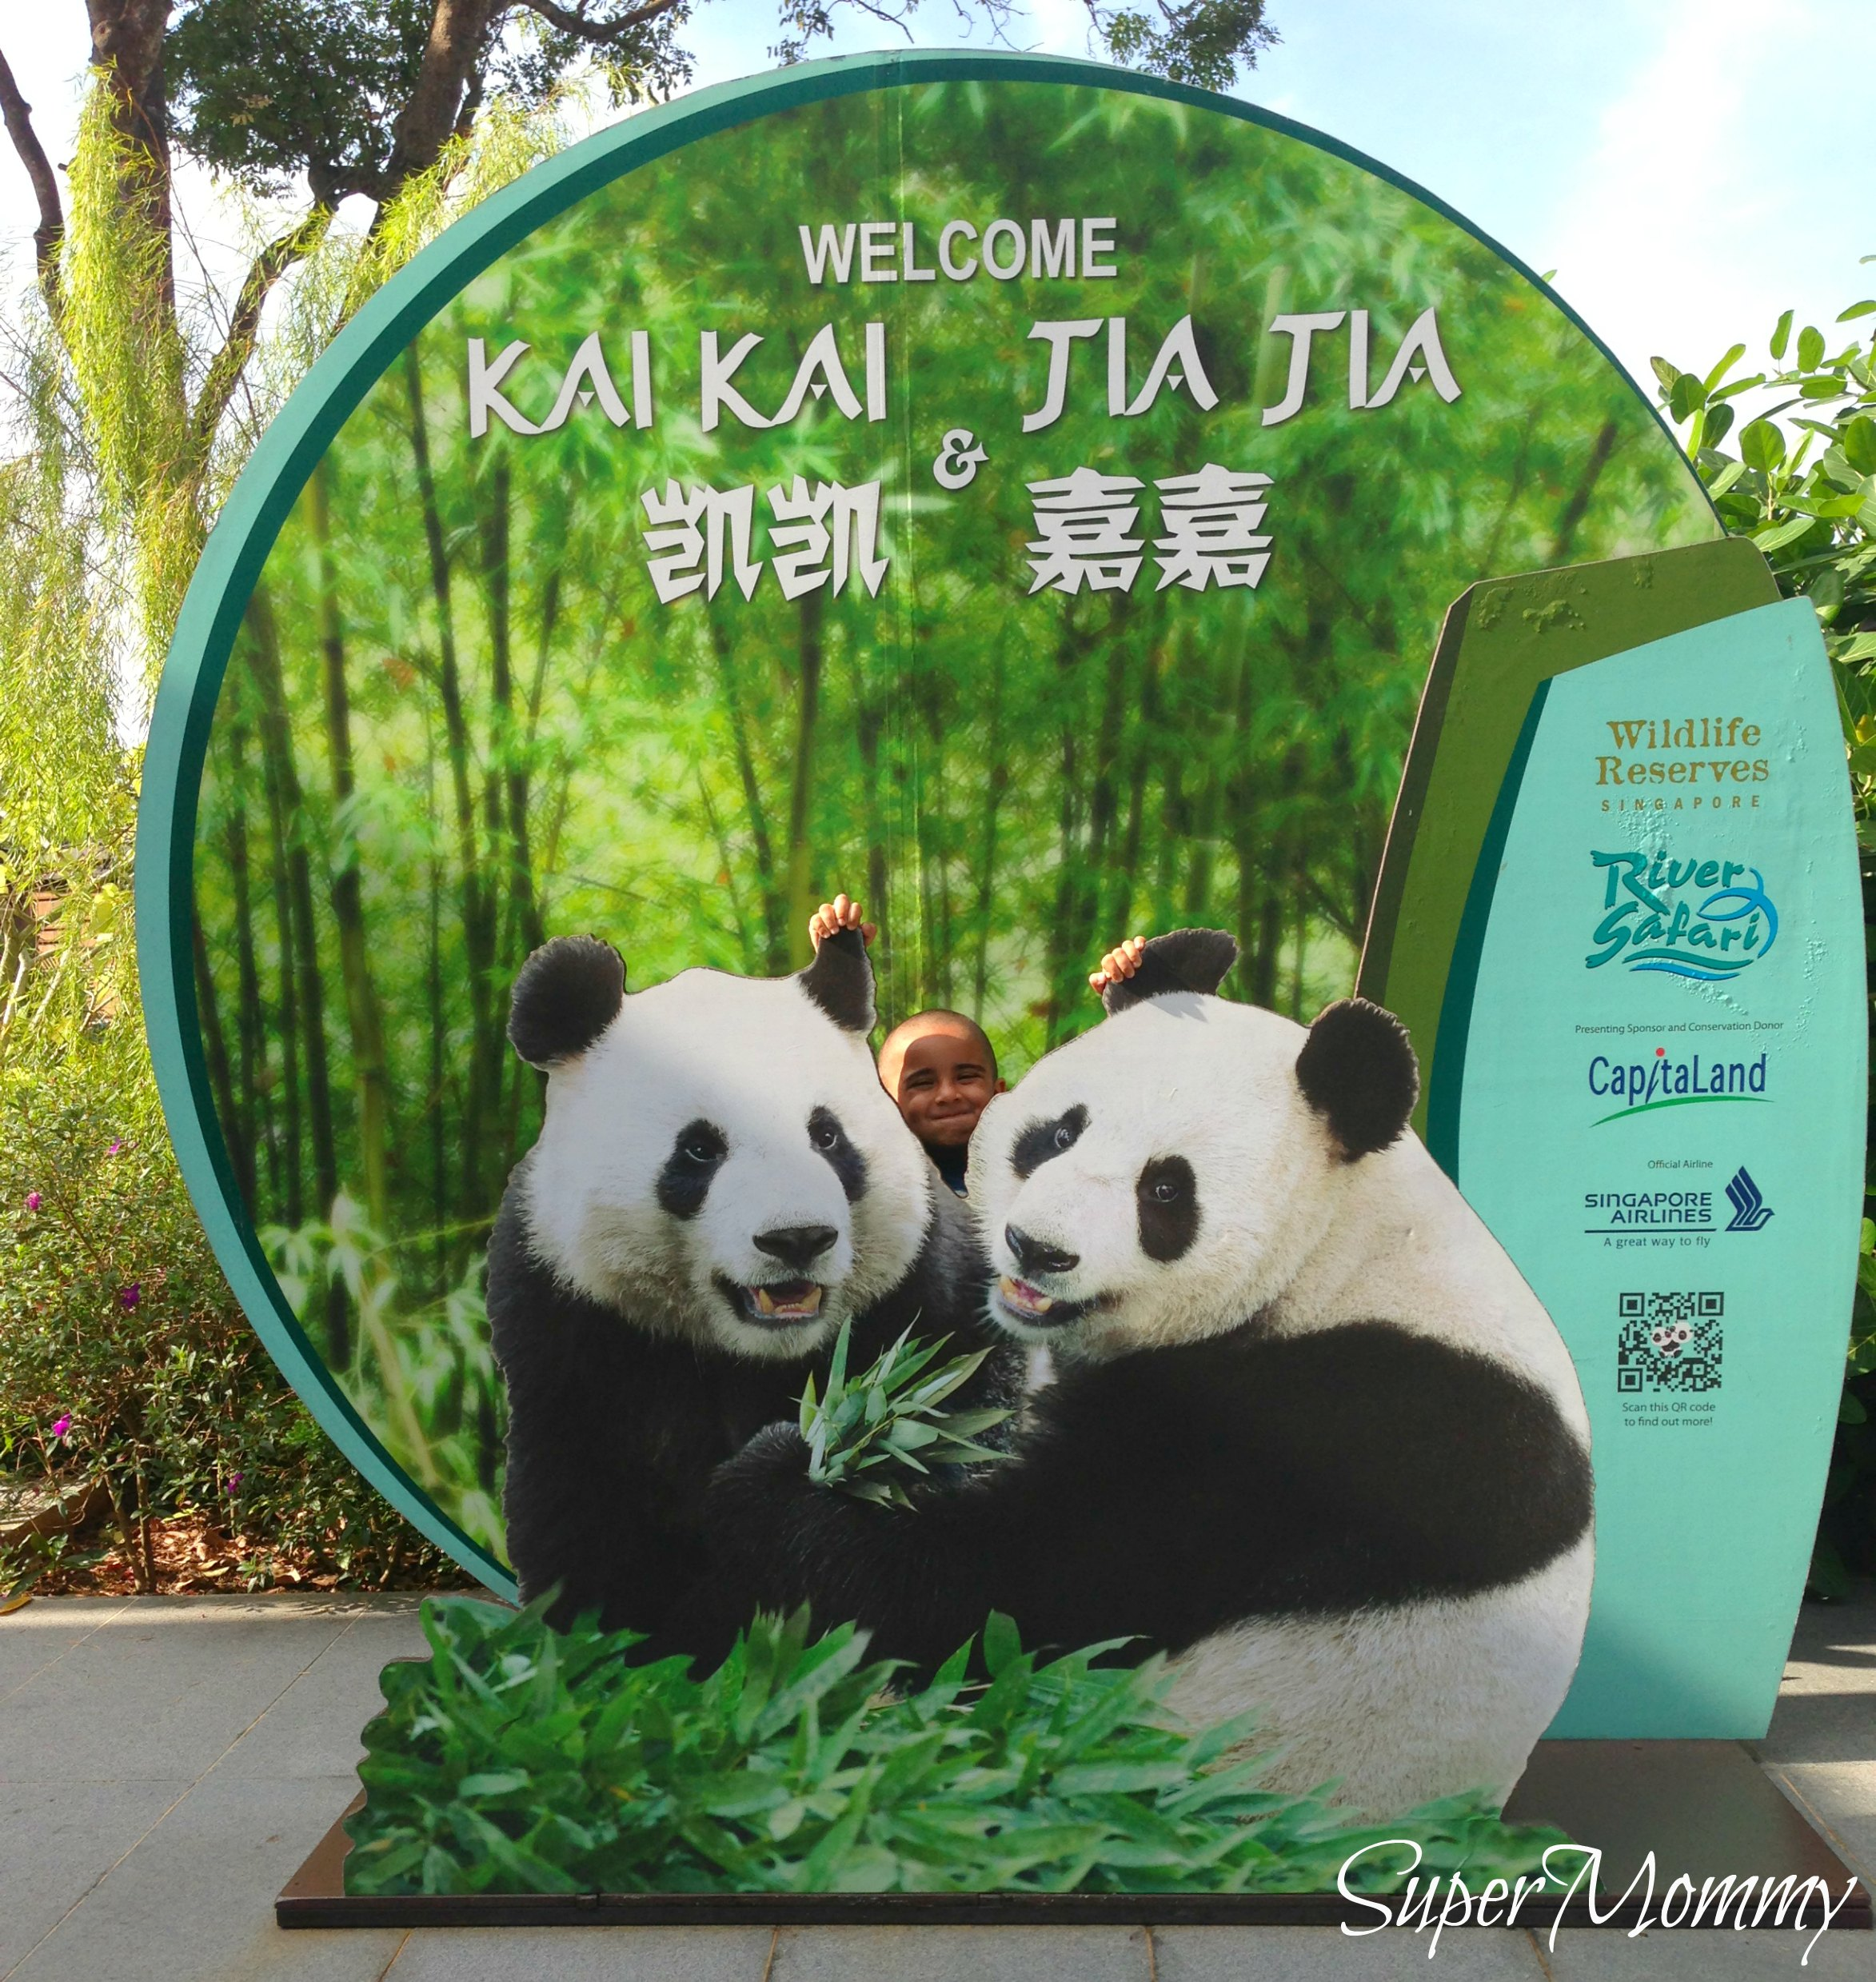 A Review of the River Safari at the Singapore Zoo